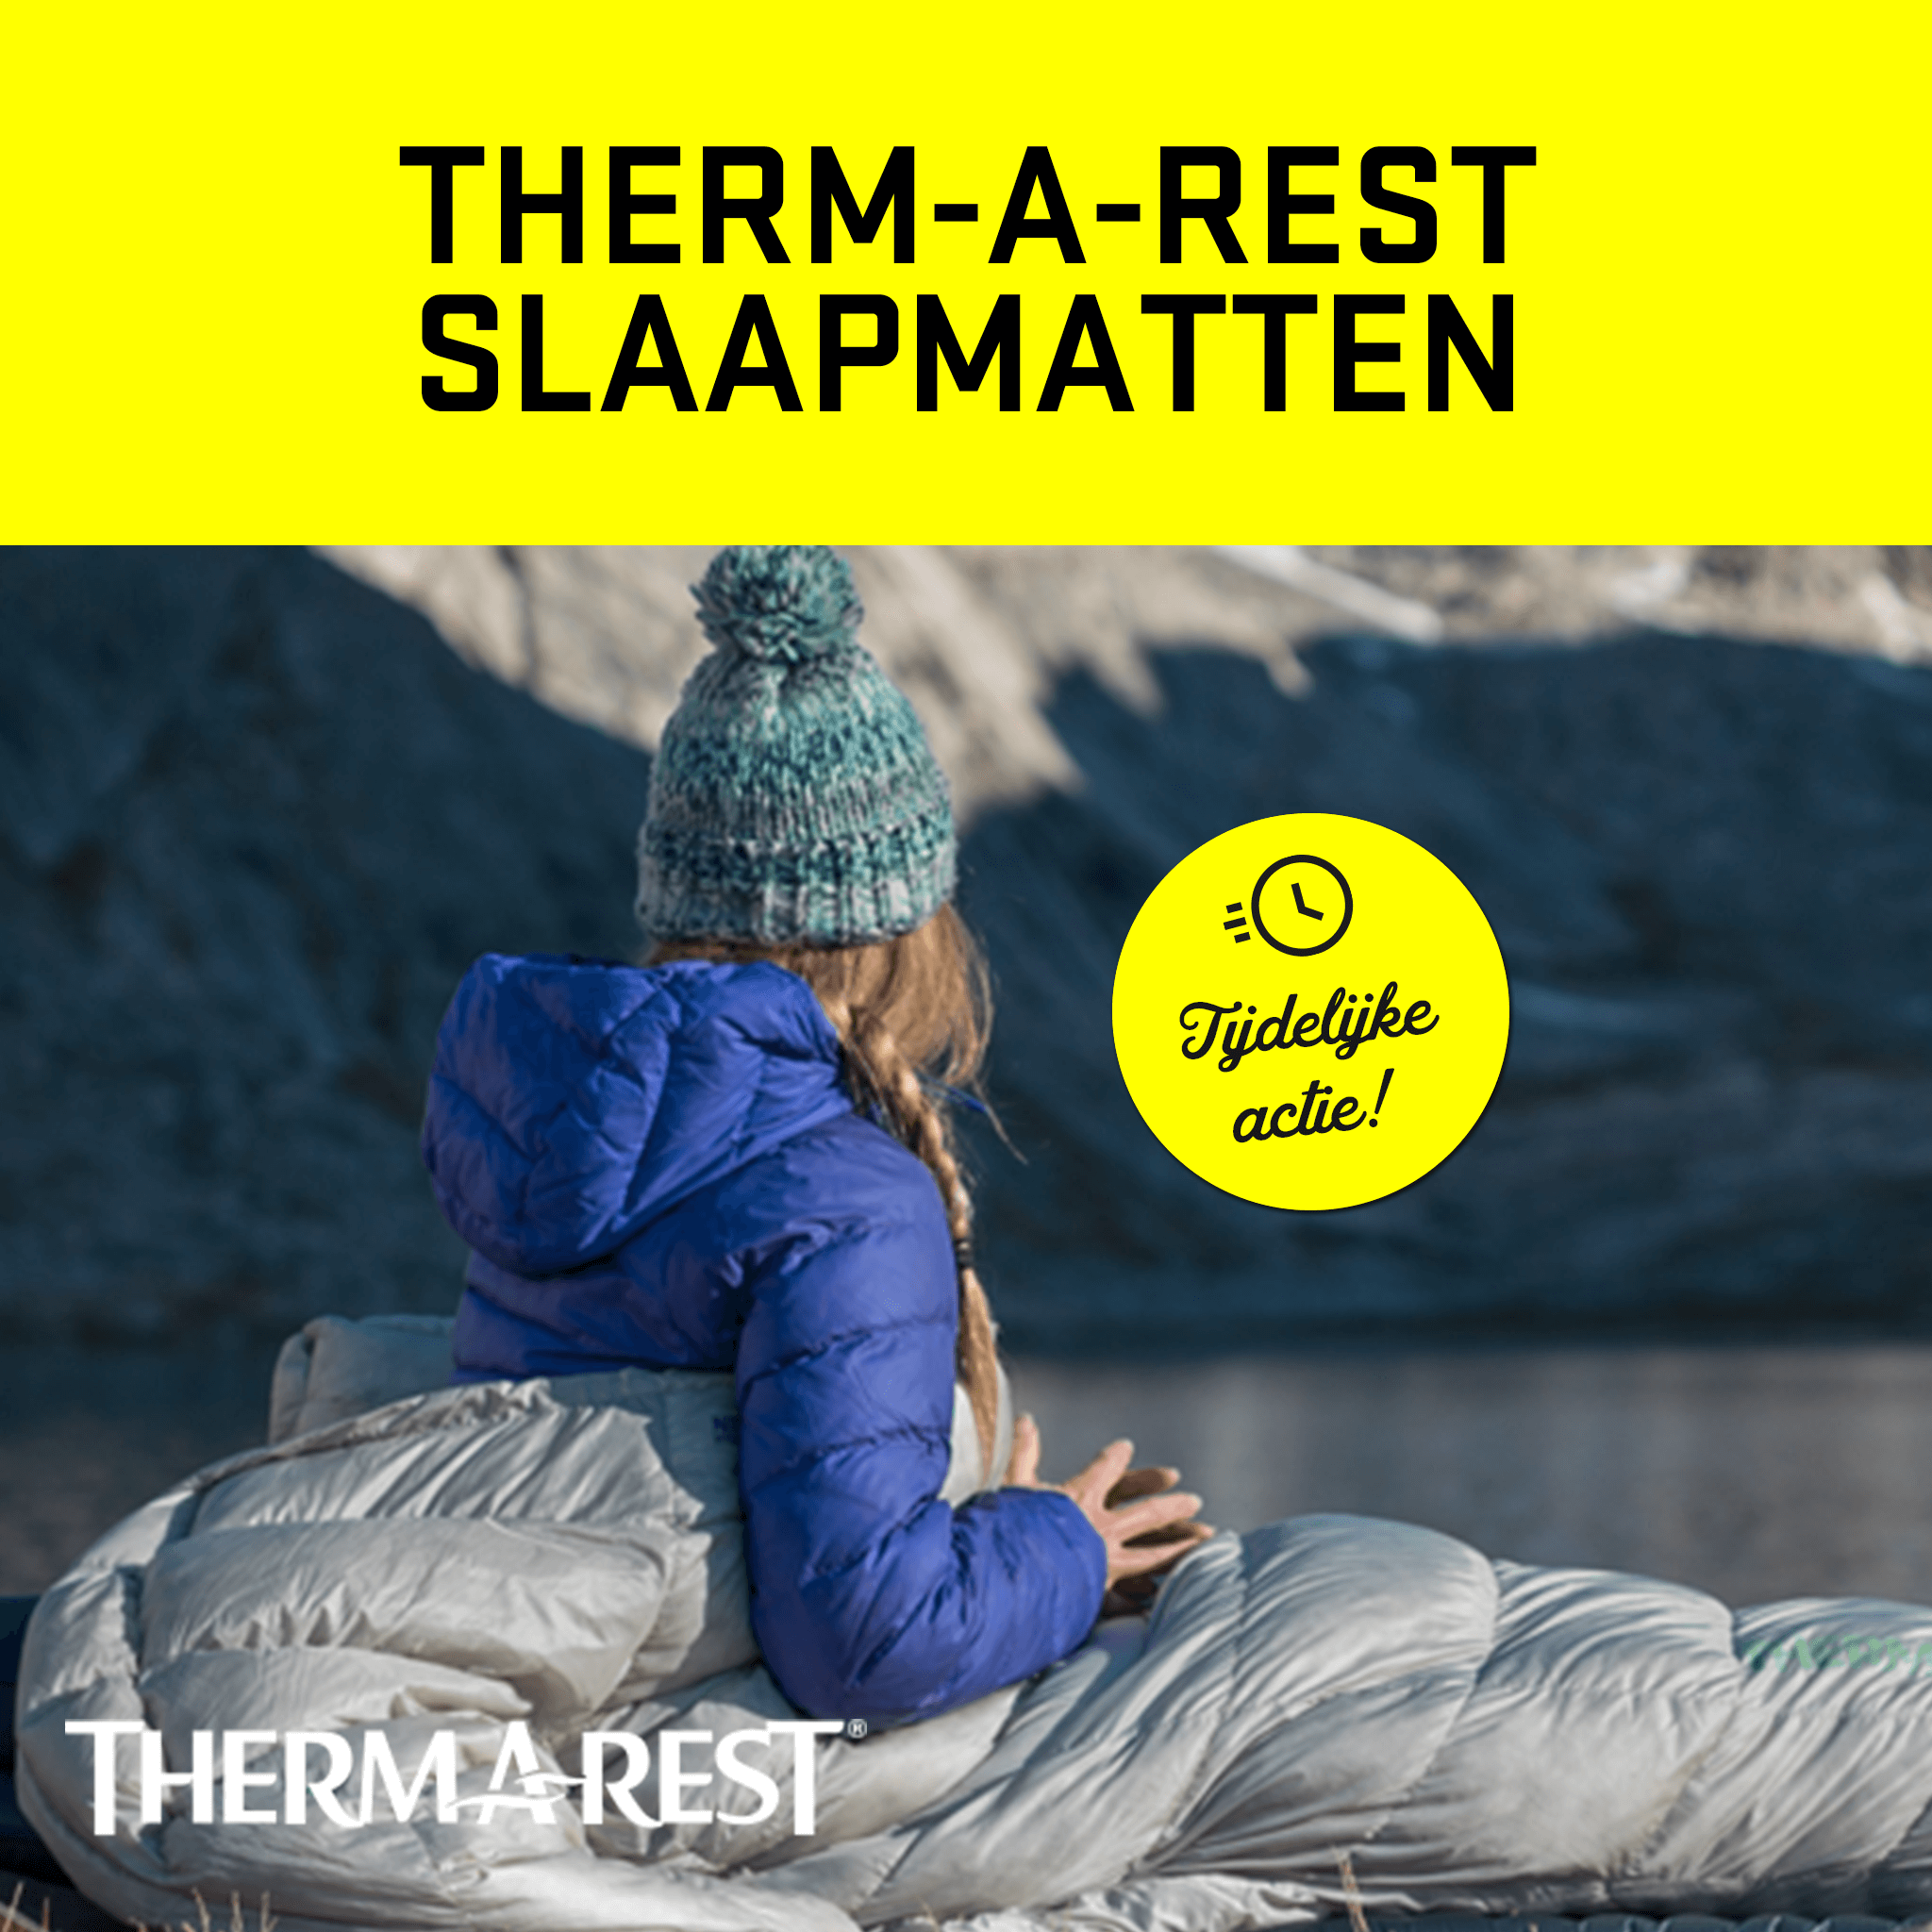 Therm-a-rest Slaapmatten